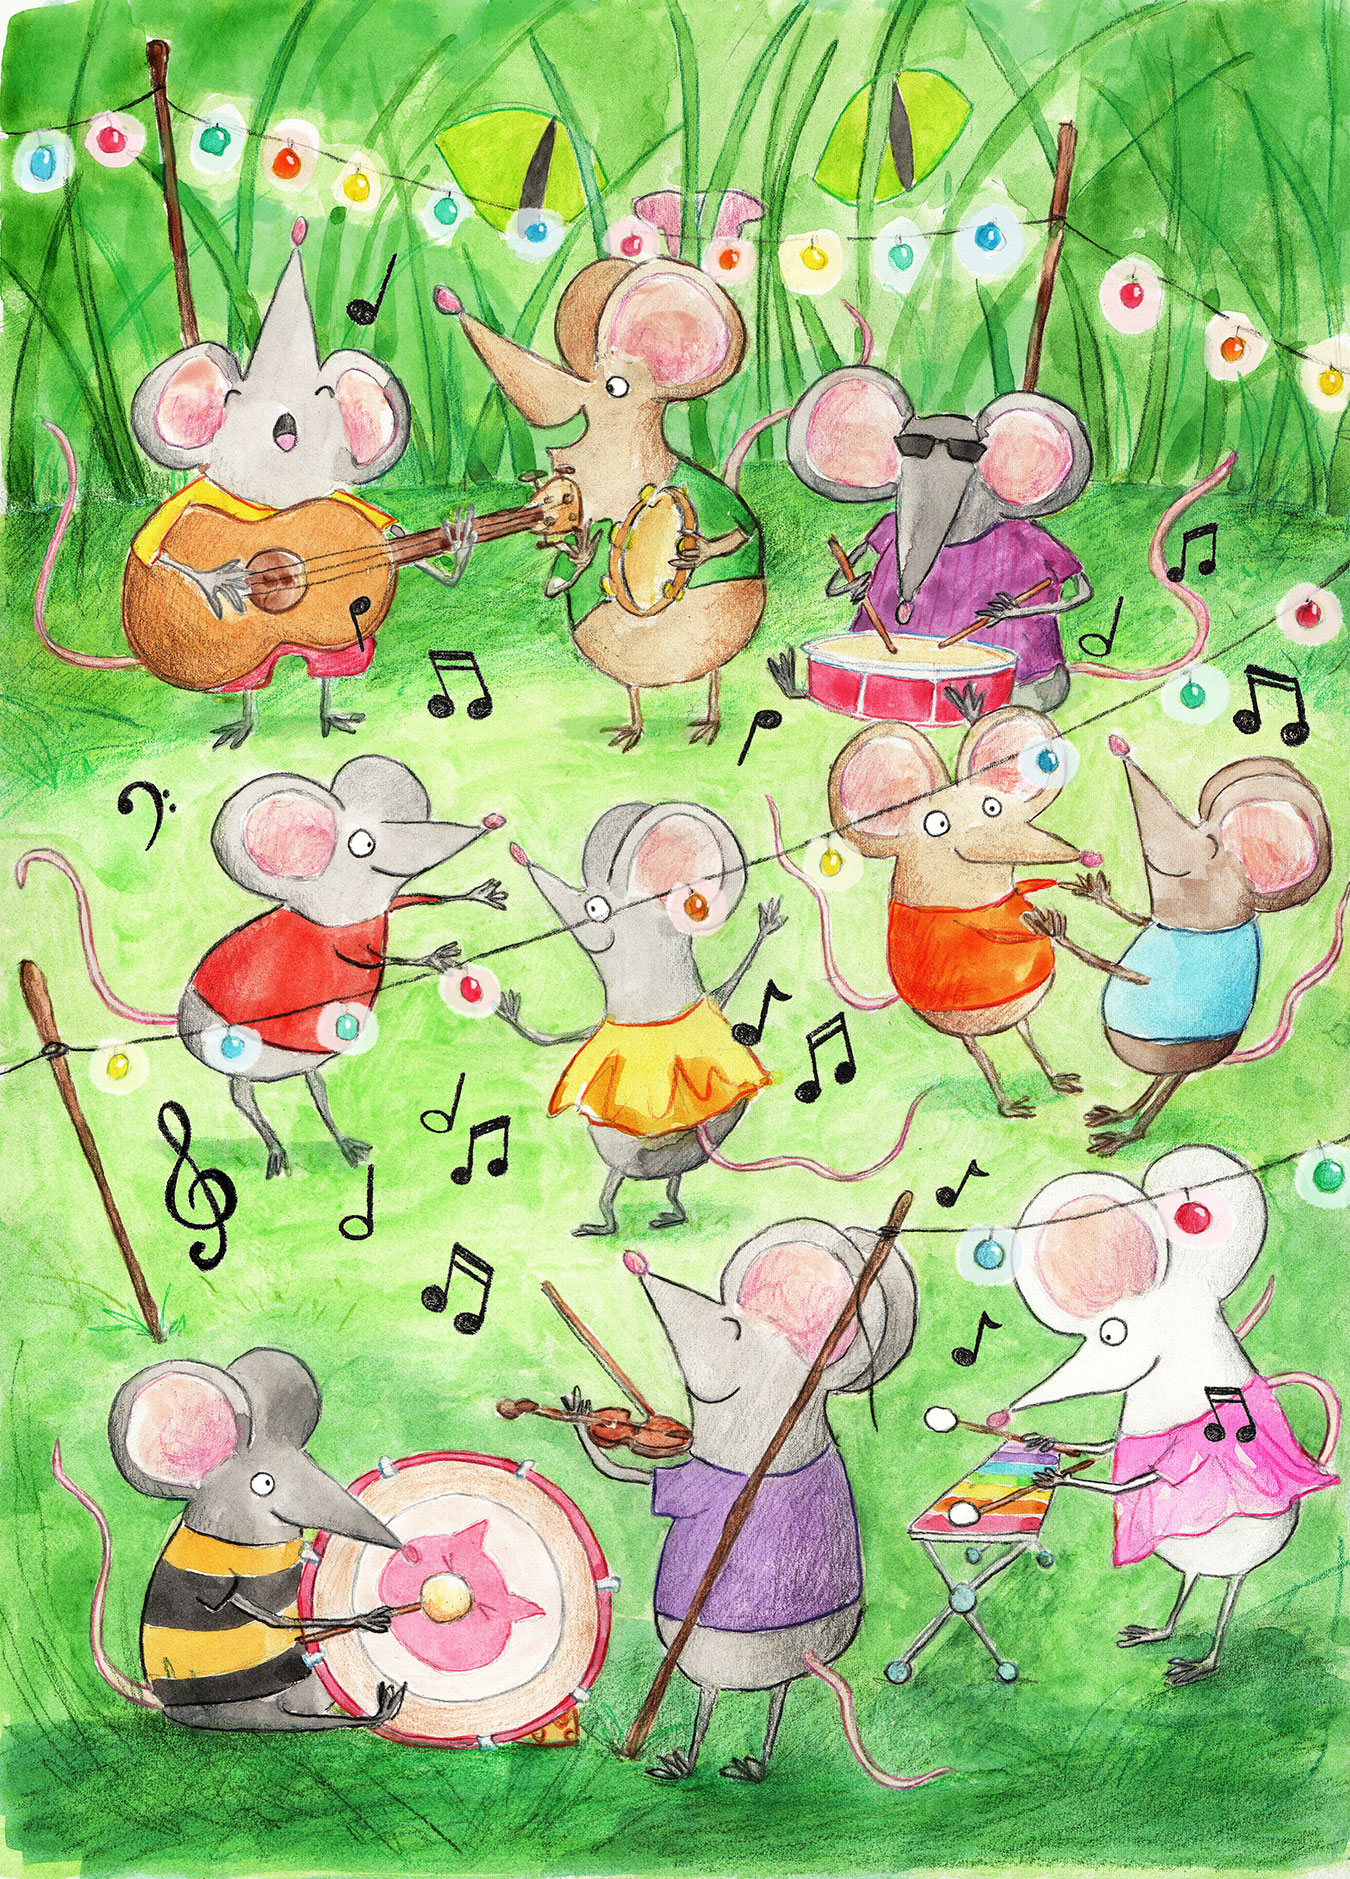 group of mice play music and dance on the grass